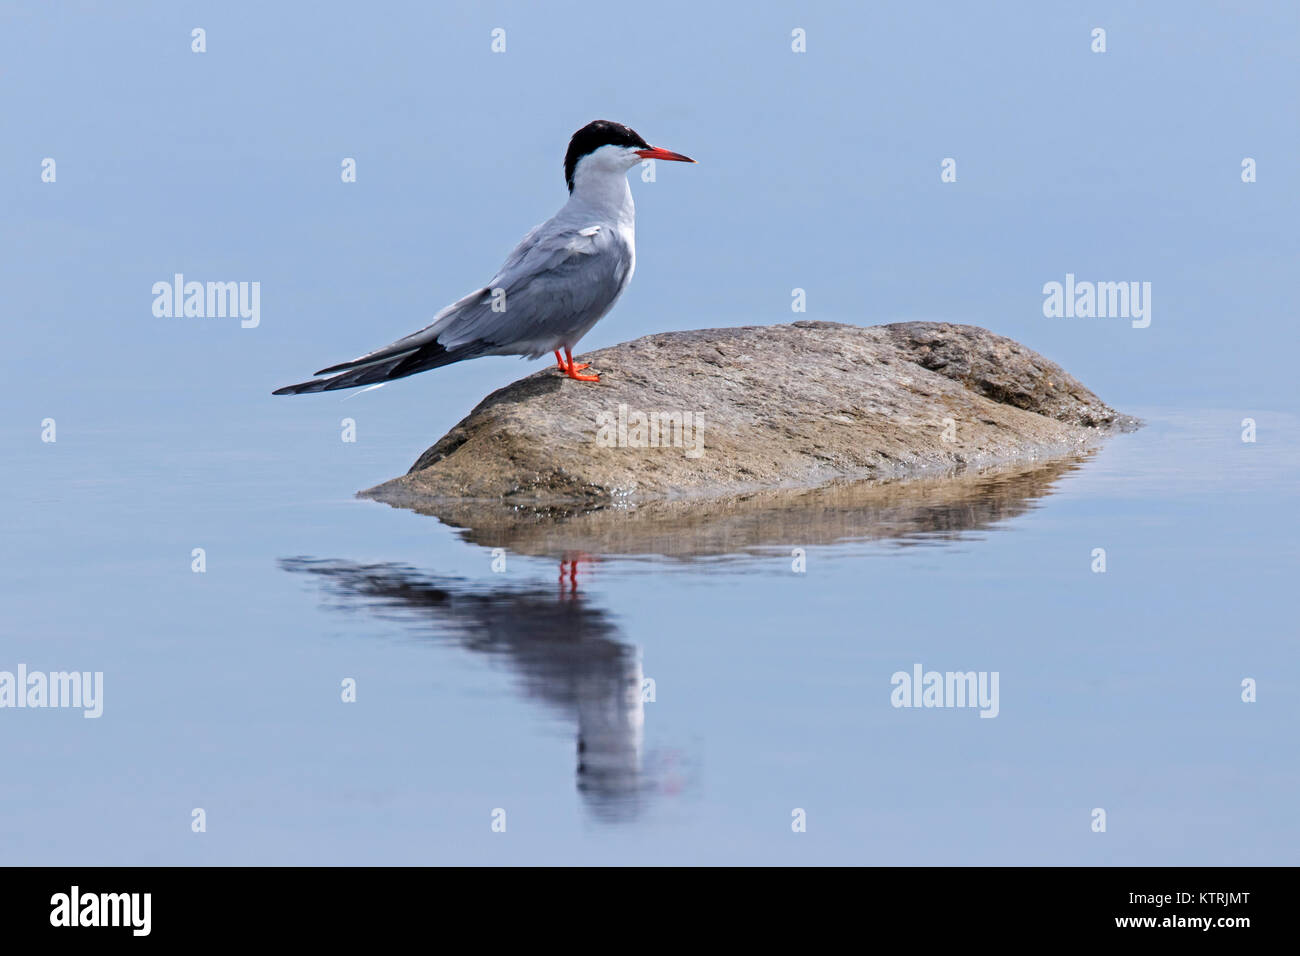 Arctic tern (Sterna paradisaea) in breeding plumage perched on rock in lake in summer - Stock Image